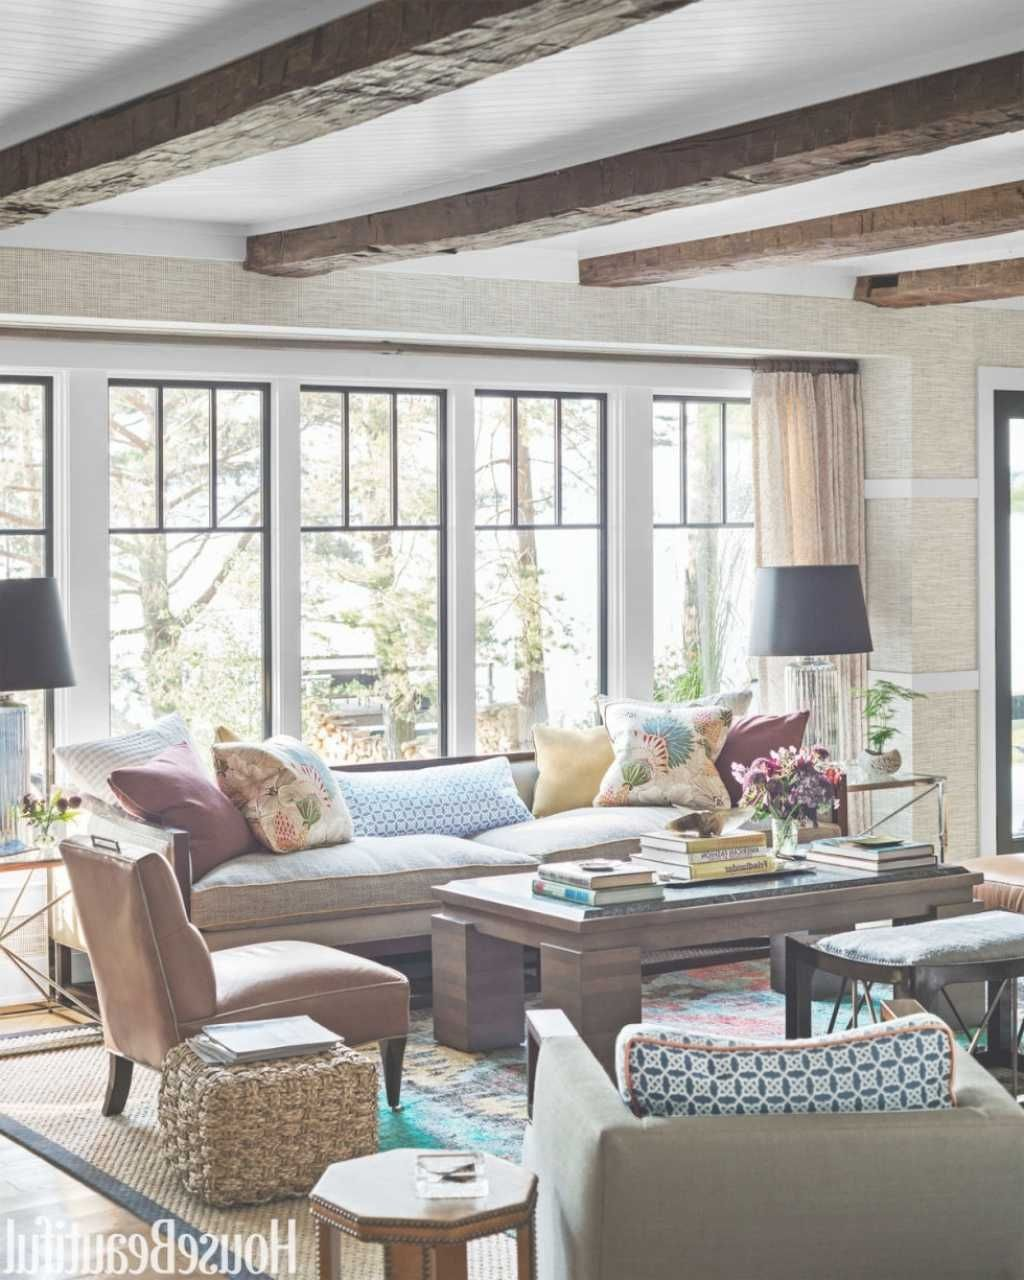 Decorate Your Dwelling With These Interior Design Tips Rustic